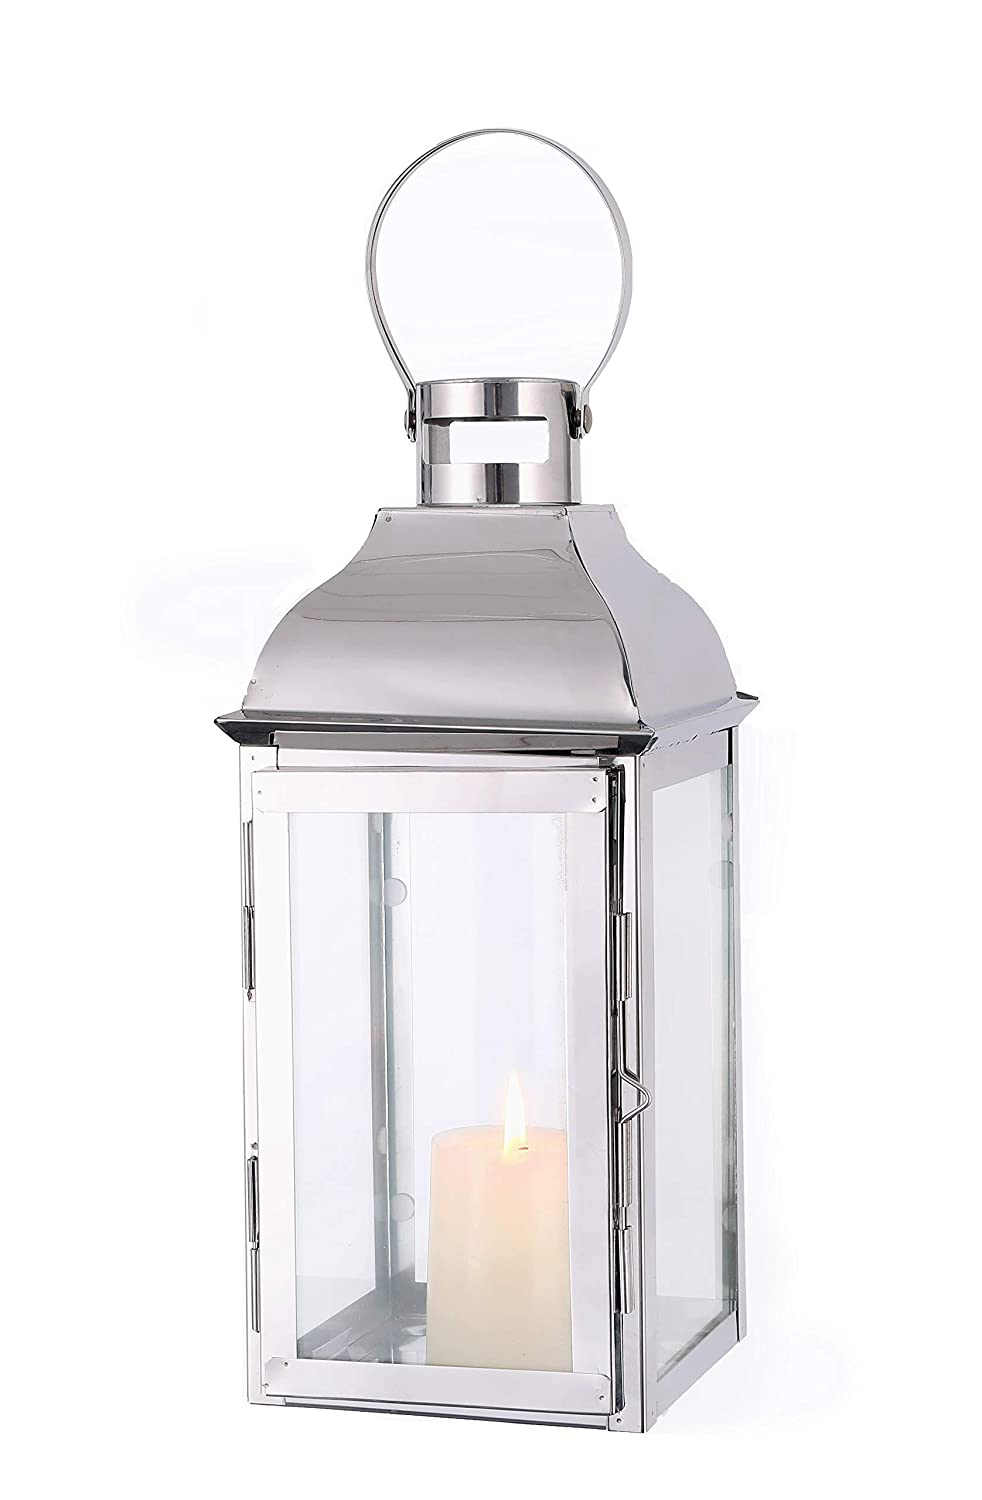 """JHY Design Silver Decorative Lanterns 15"""" High Stainless Steel Candle Lanterns with Tempered Glass for Indoor Outdoor, Events, Parities and Weddings Vintage Style Hanging Lamps …"""